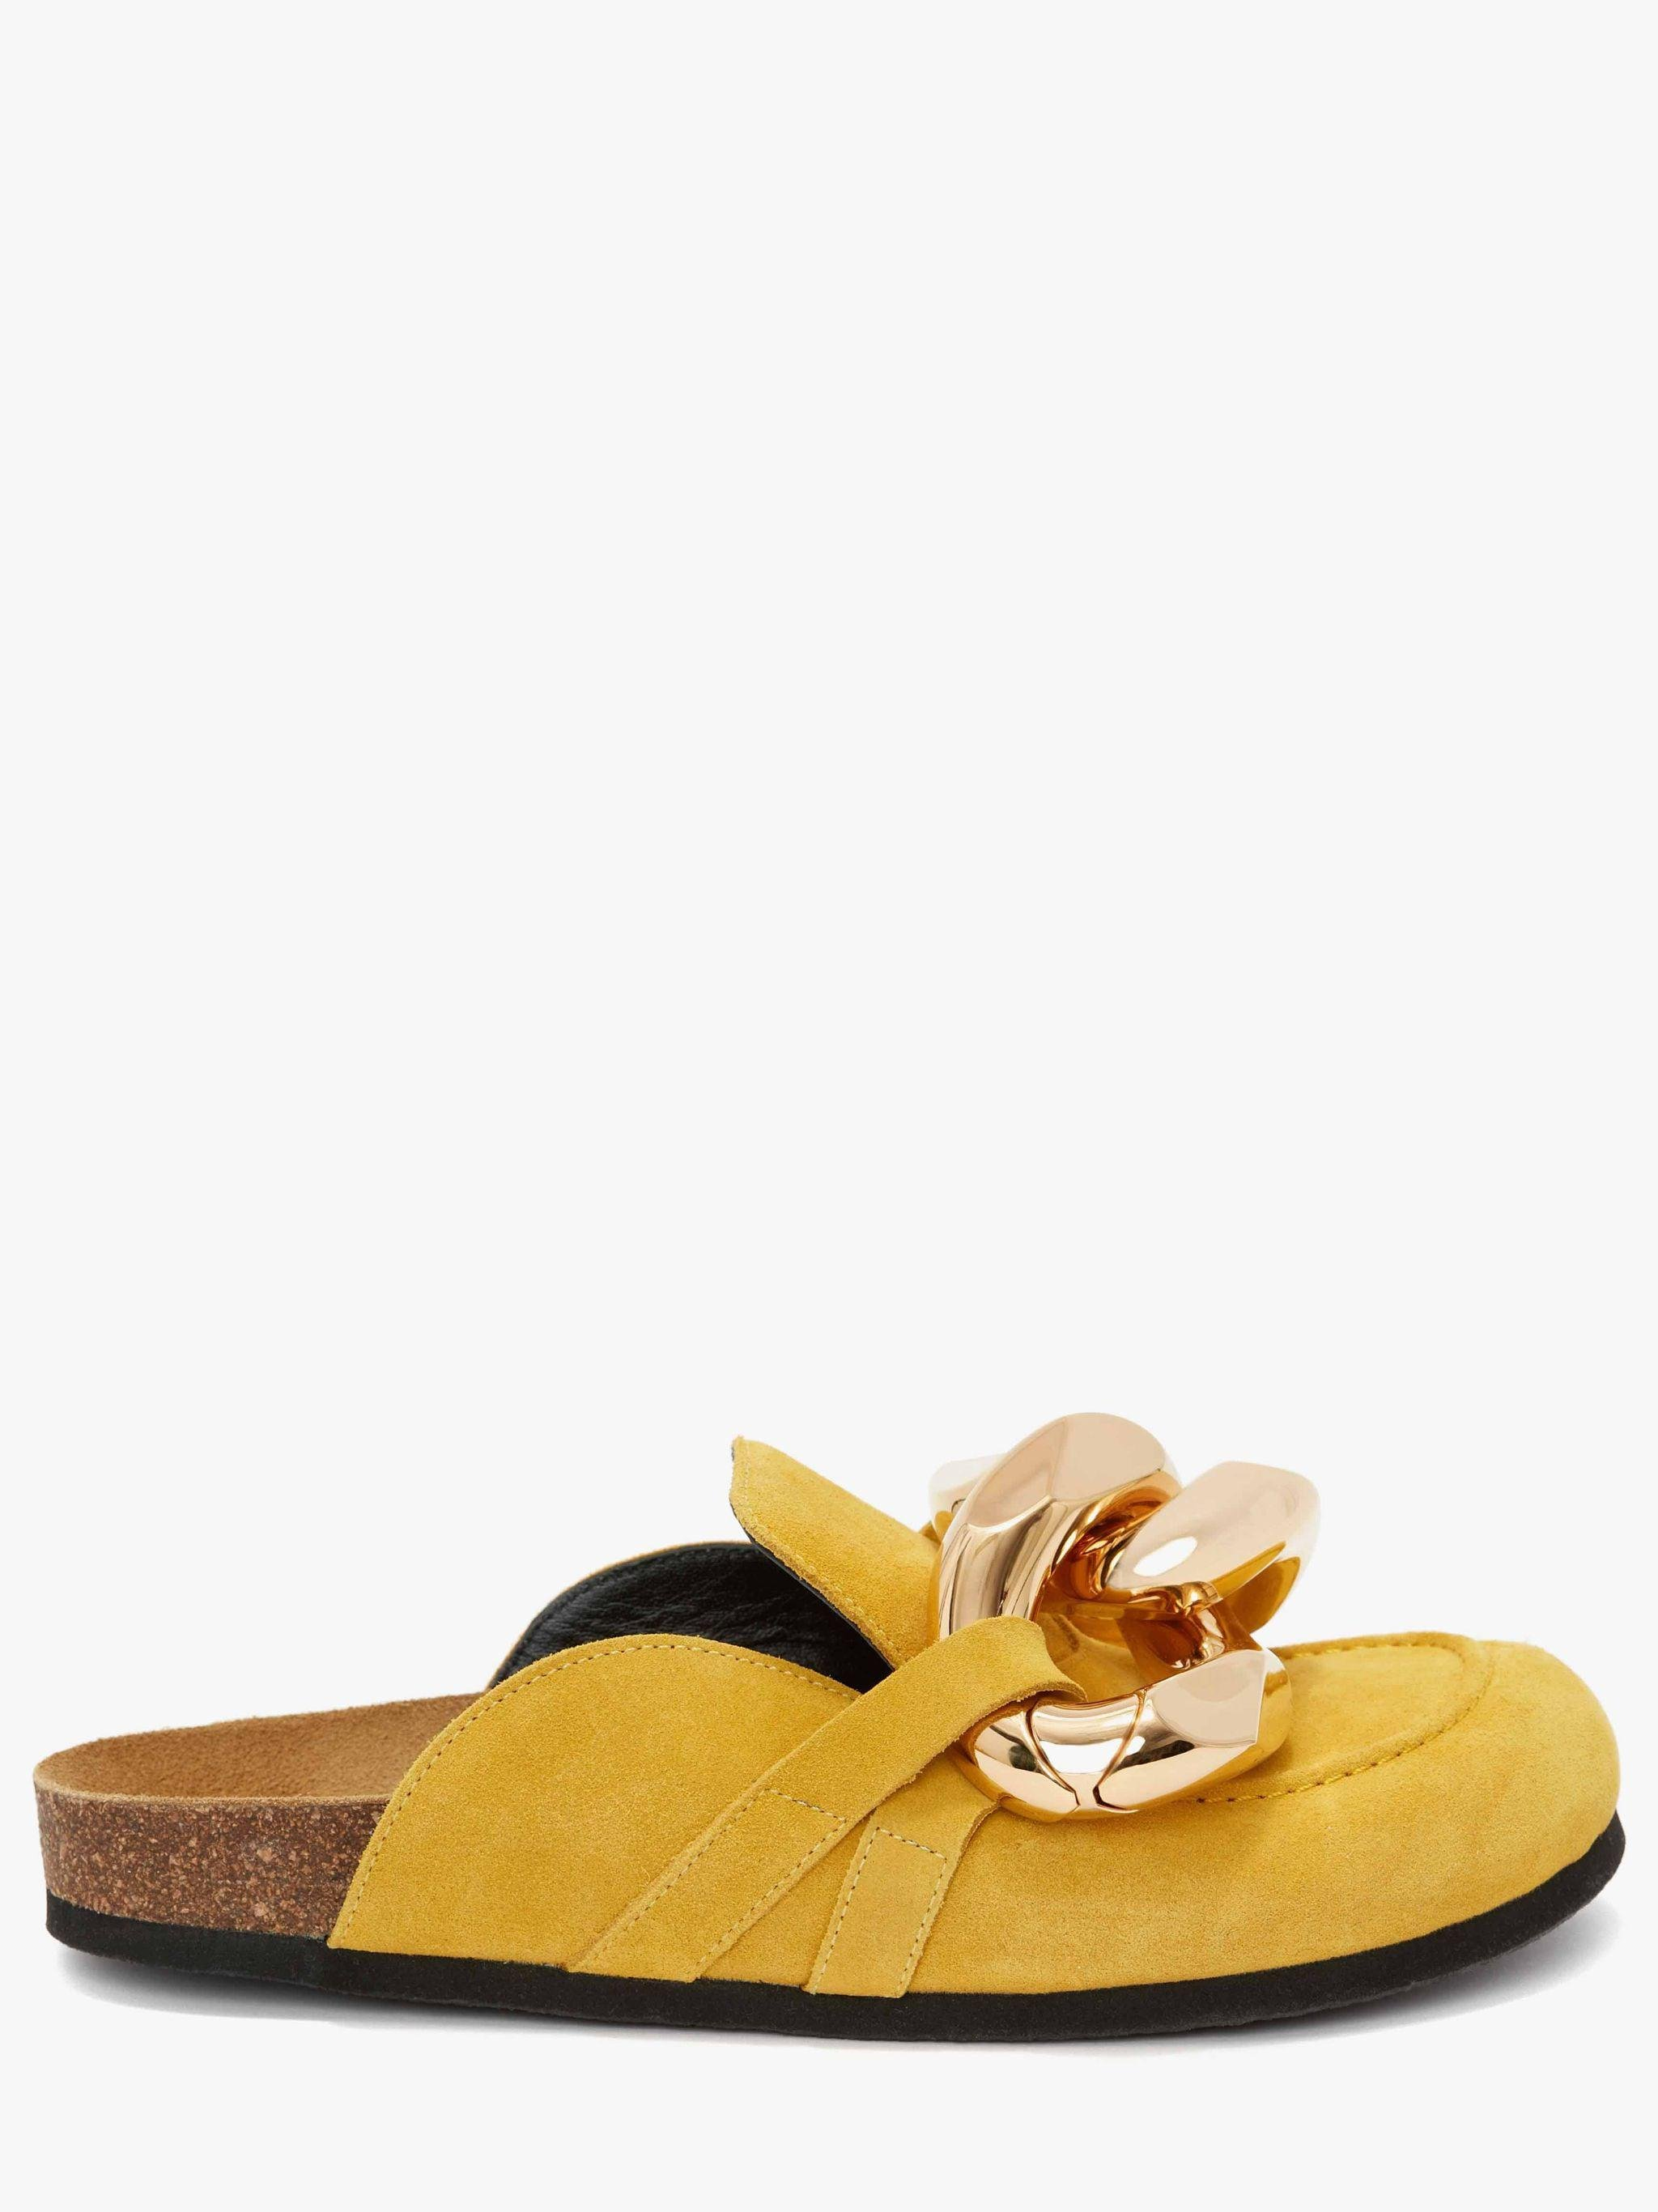 MEN'S CHAIN LOAFER MULES